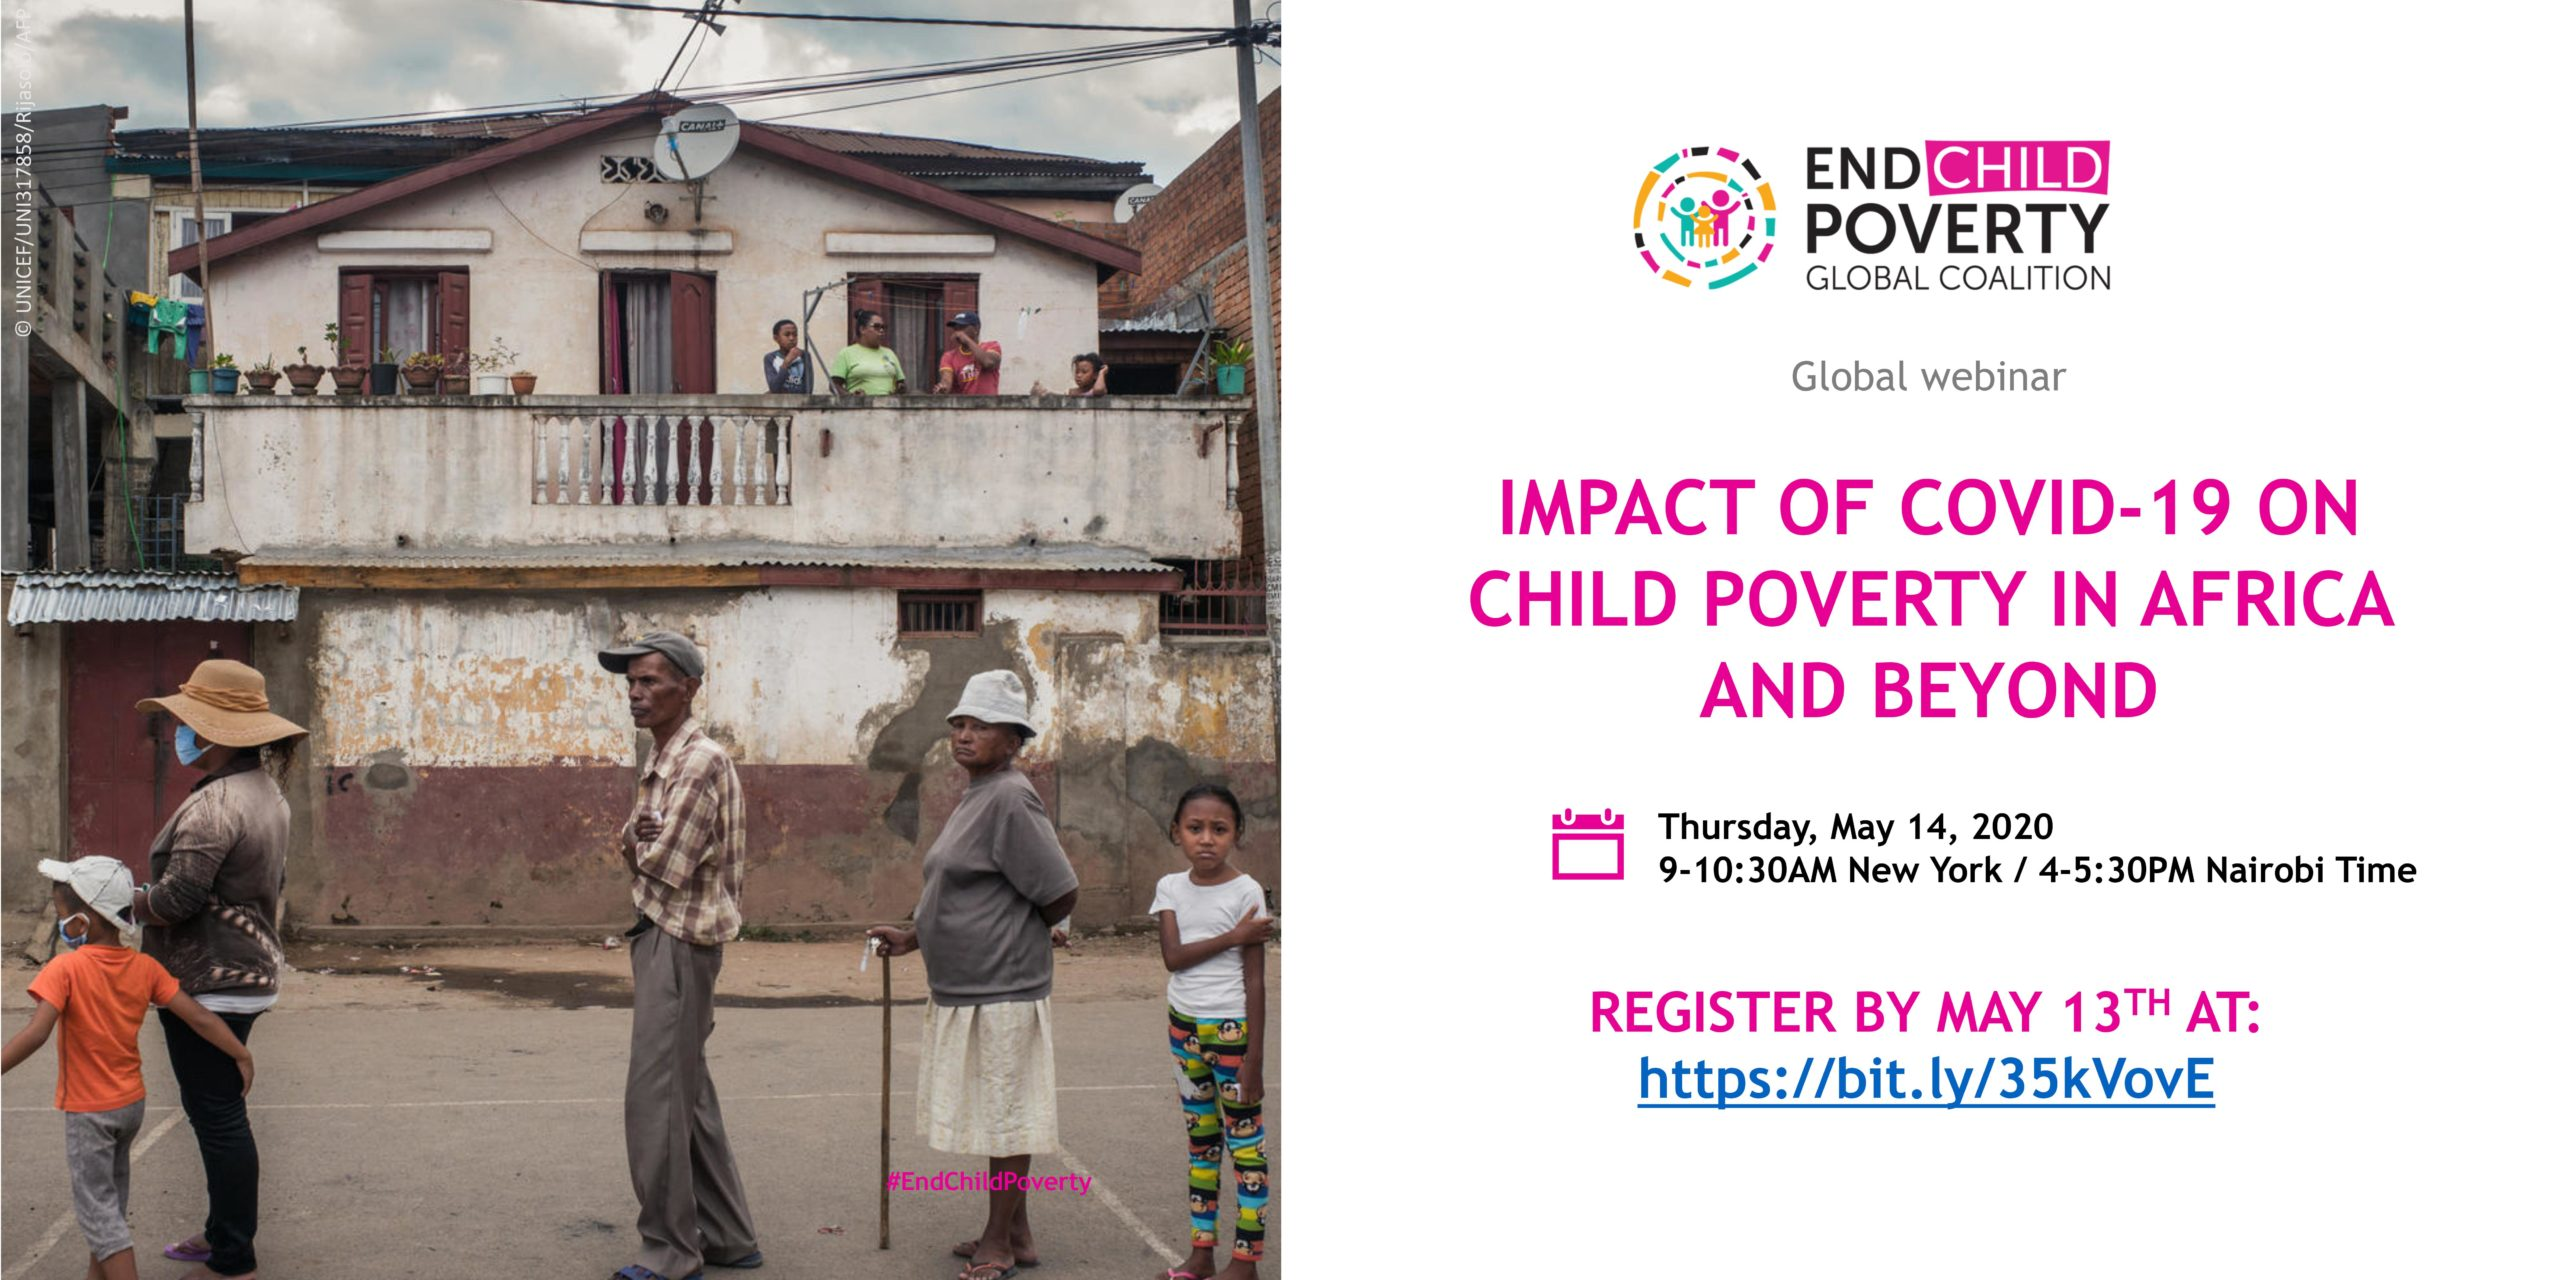 Global Coalition to End Child Poverty Webinar – Impact of COVID-19 on child poverty in Africa and beyond